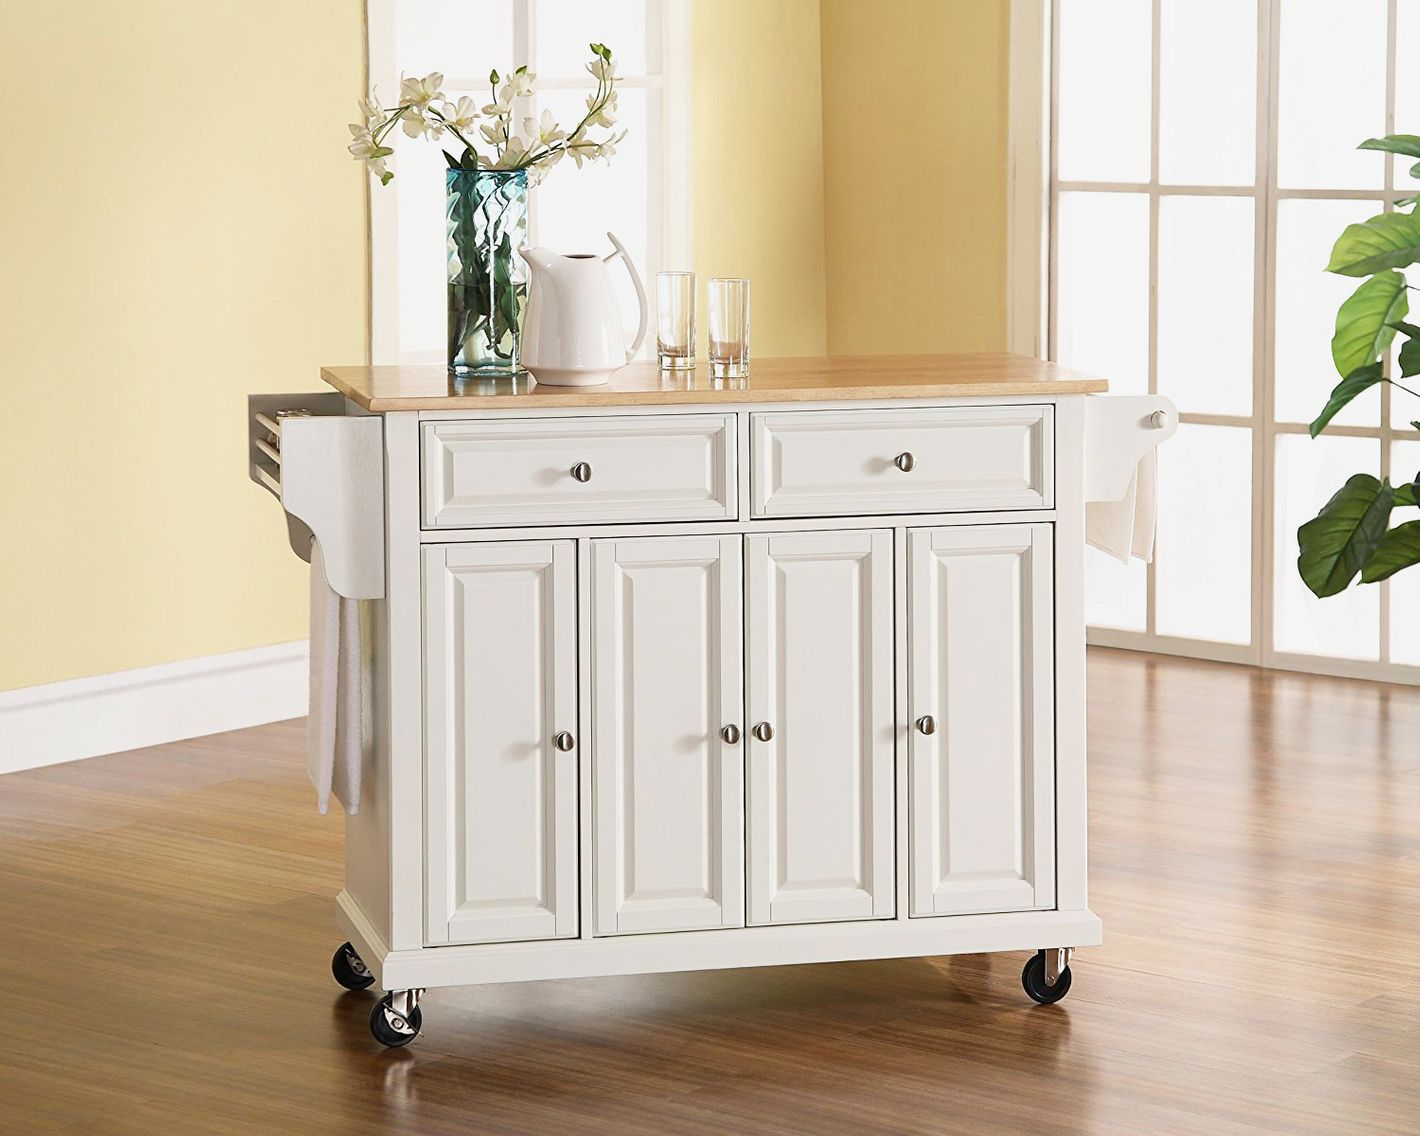 Etonnant Crosley Furniture Rolling Kitchen Island With Natural Wood Top